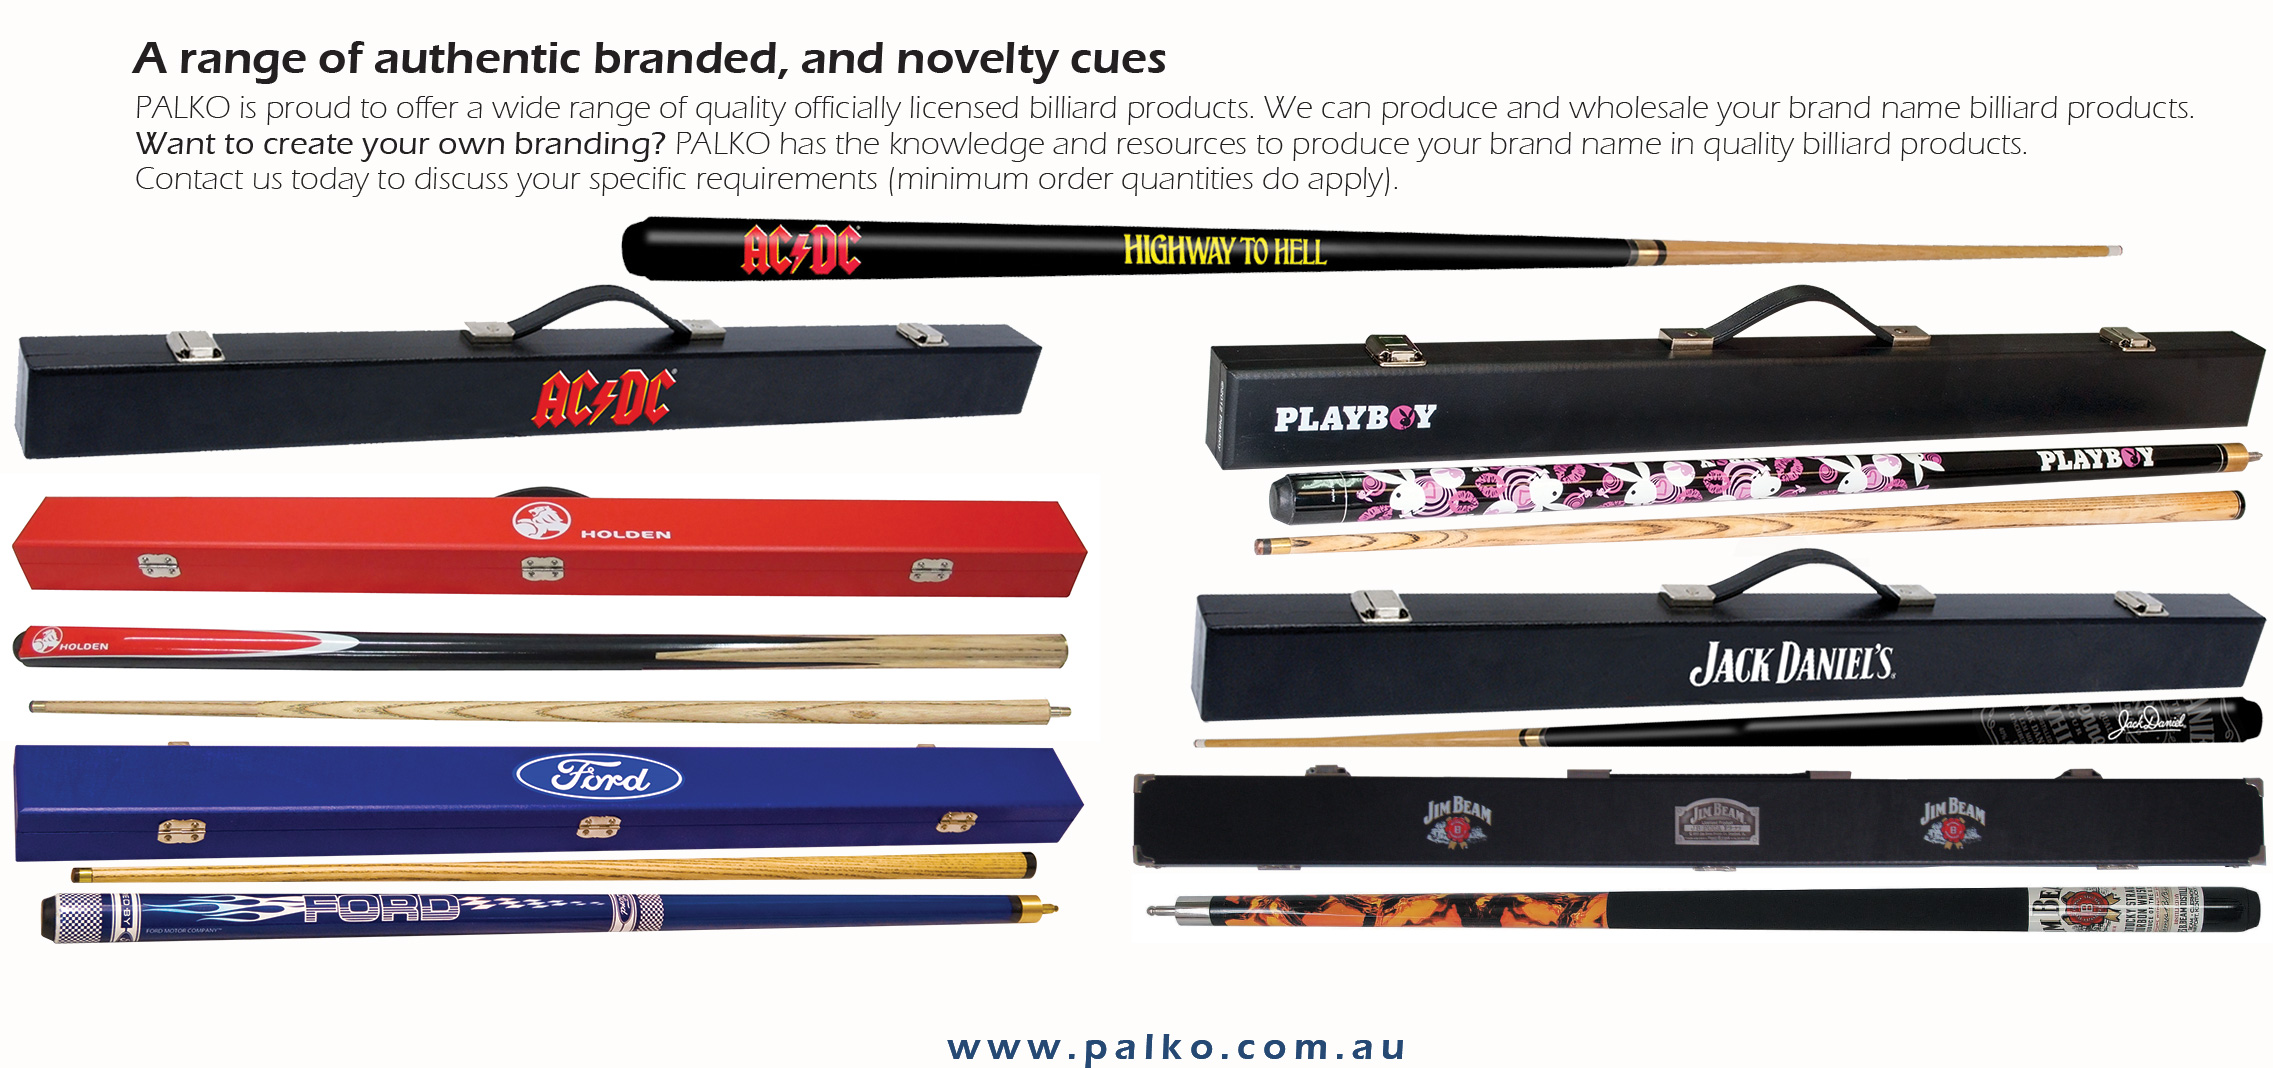 A range of authentic branded, and novelty cues